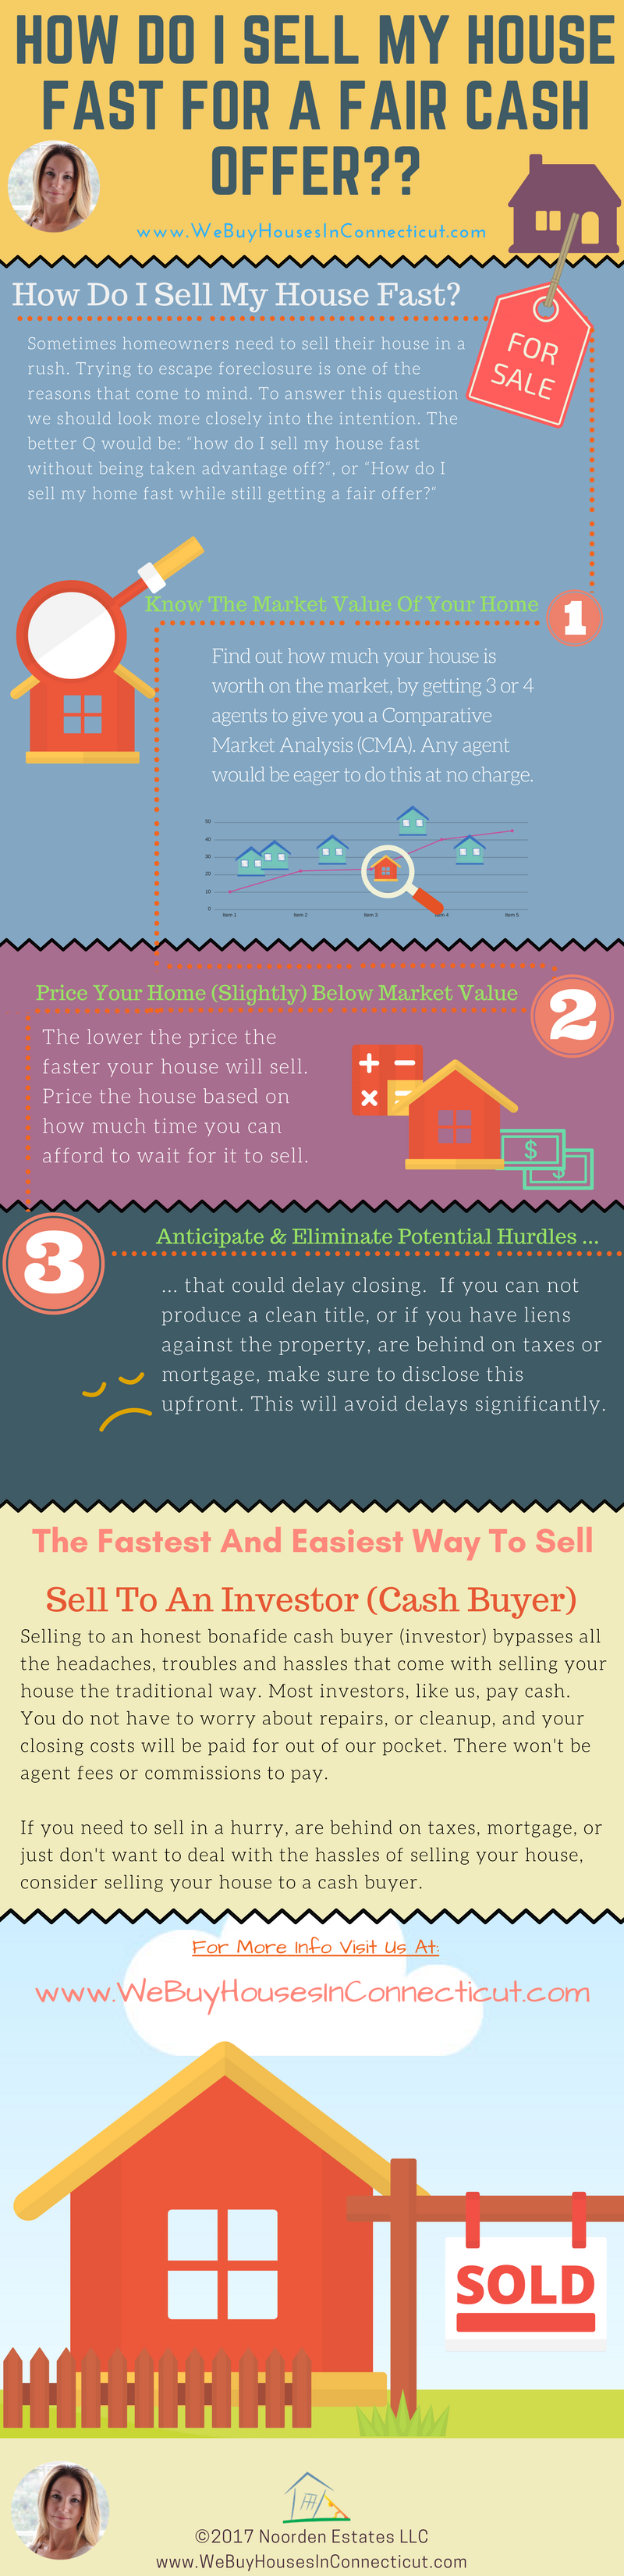 How do I sell my house in CT fast for cash?